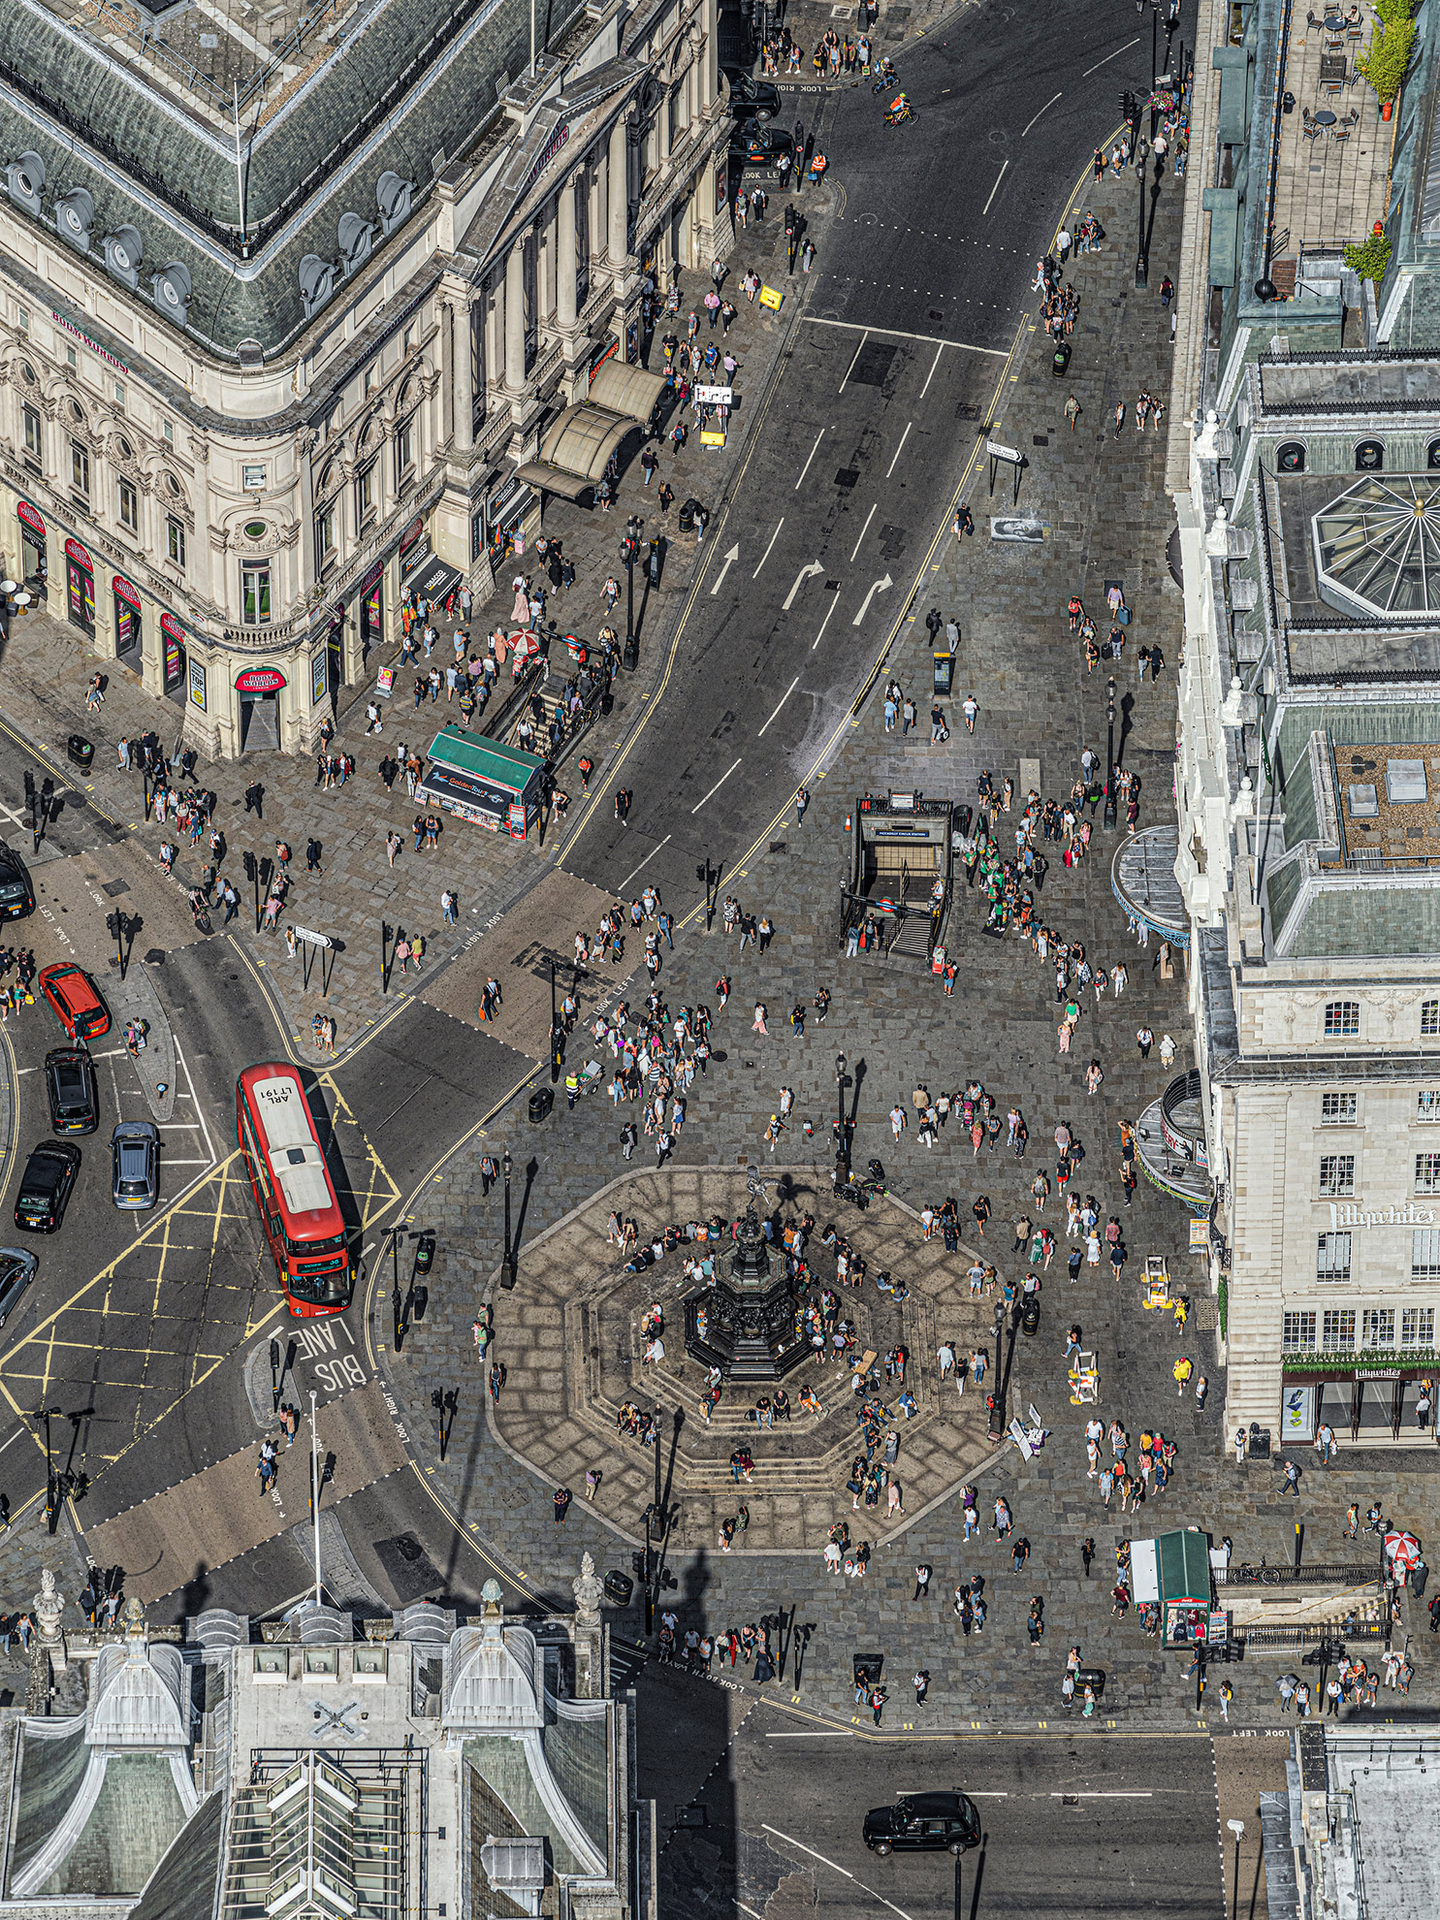 © Bernhard Lang. Aerial Views: London. 2019. PICADILLY-CIRCUS